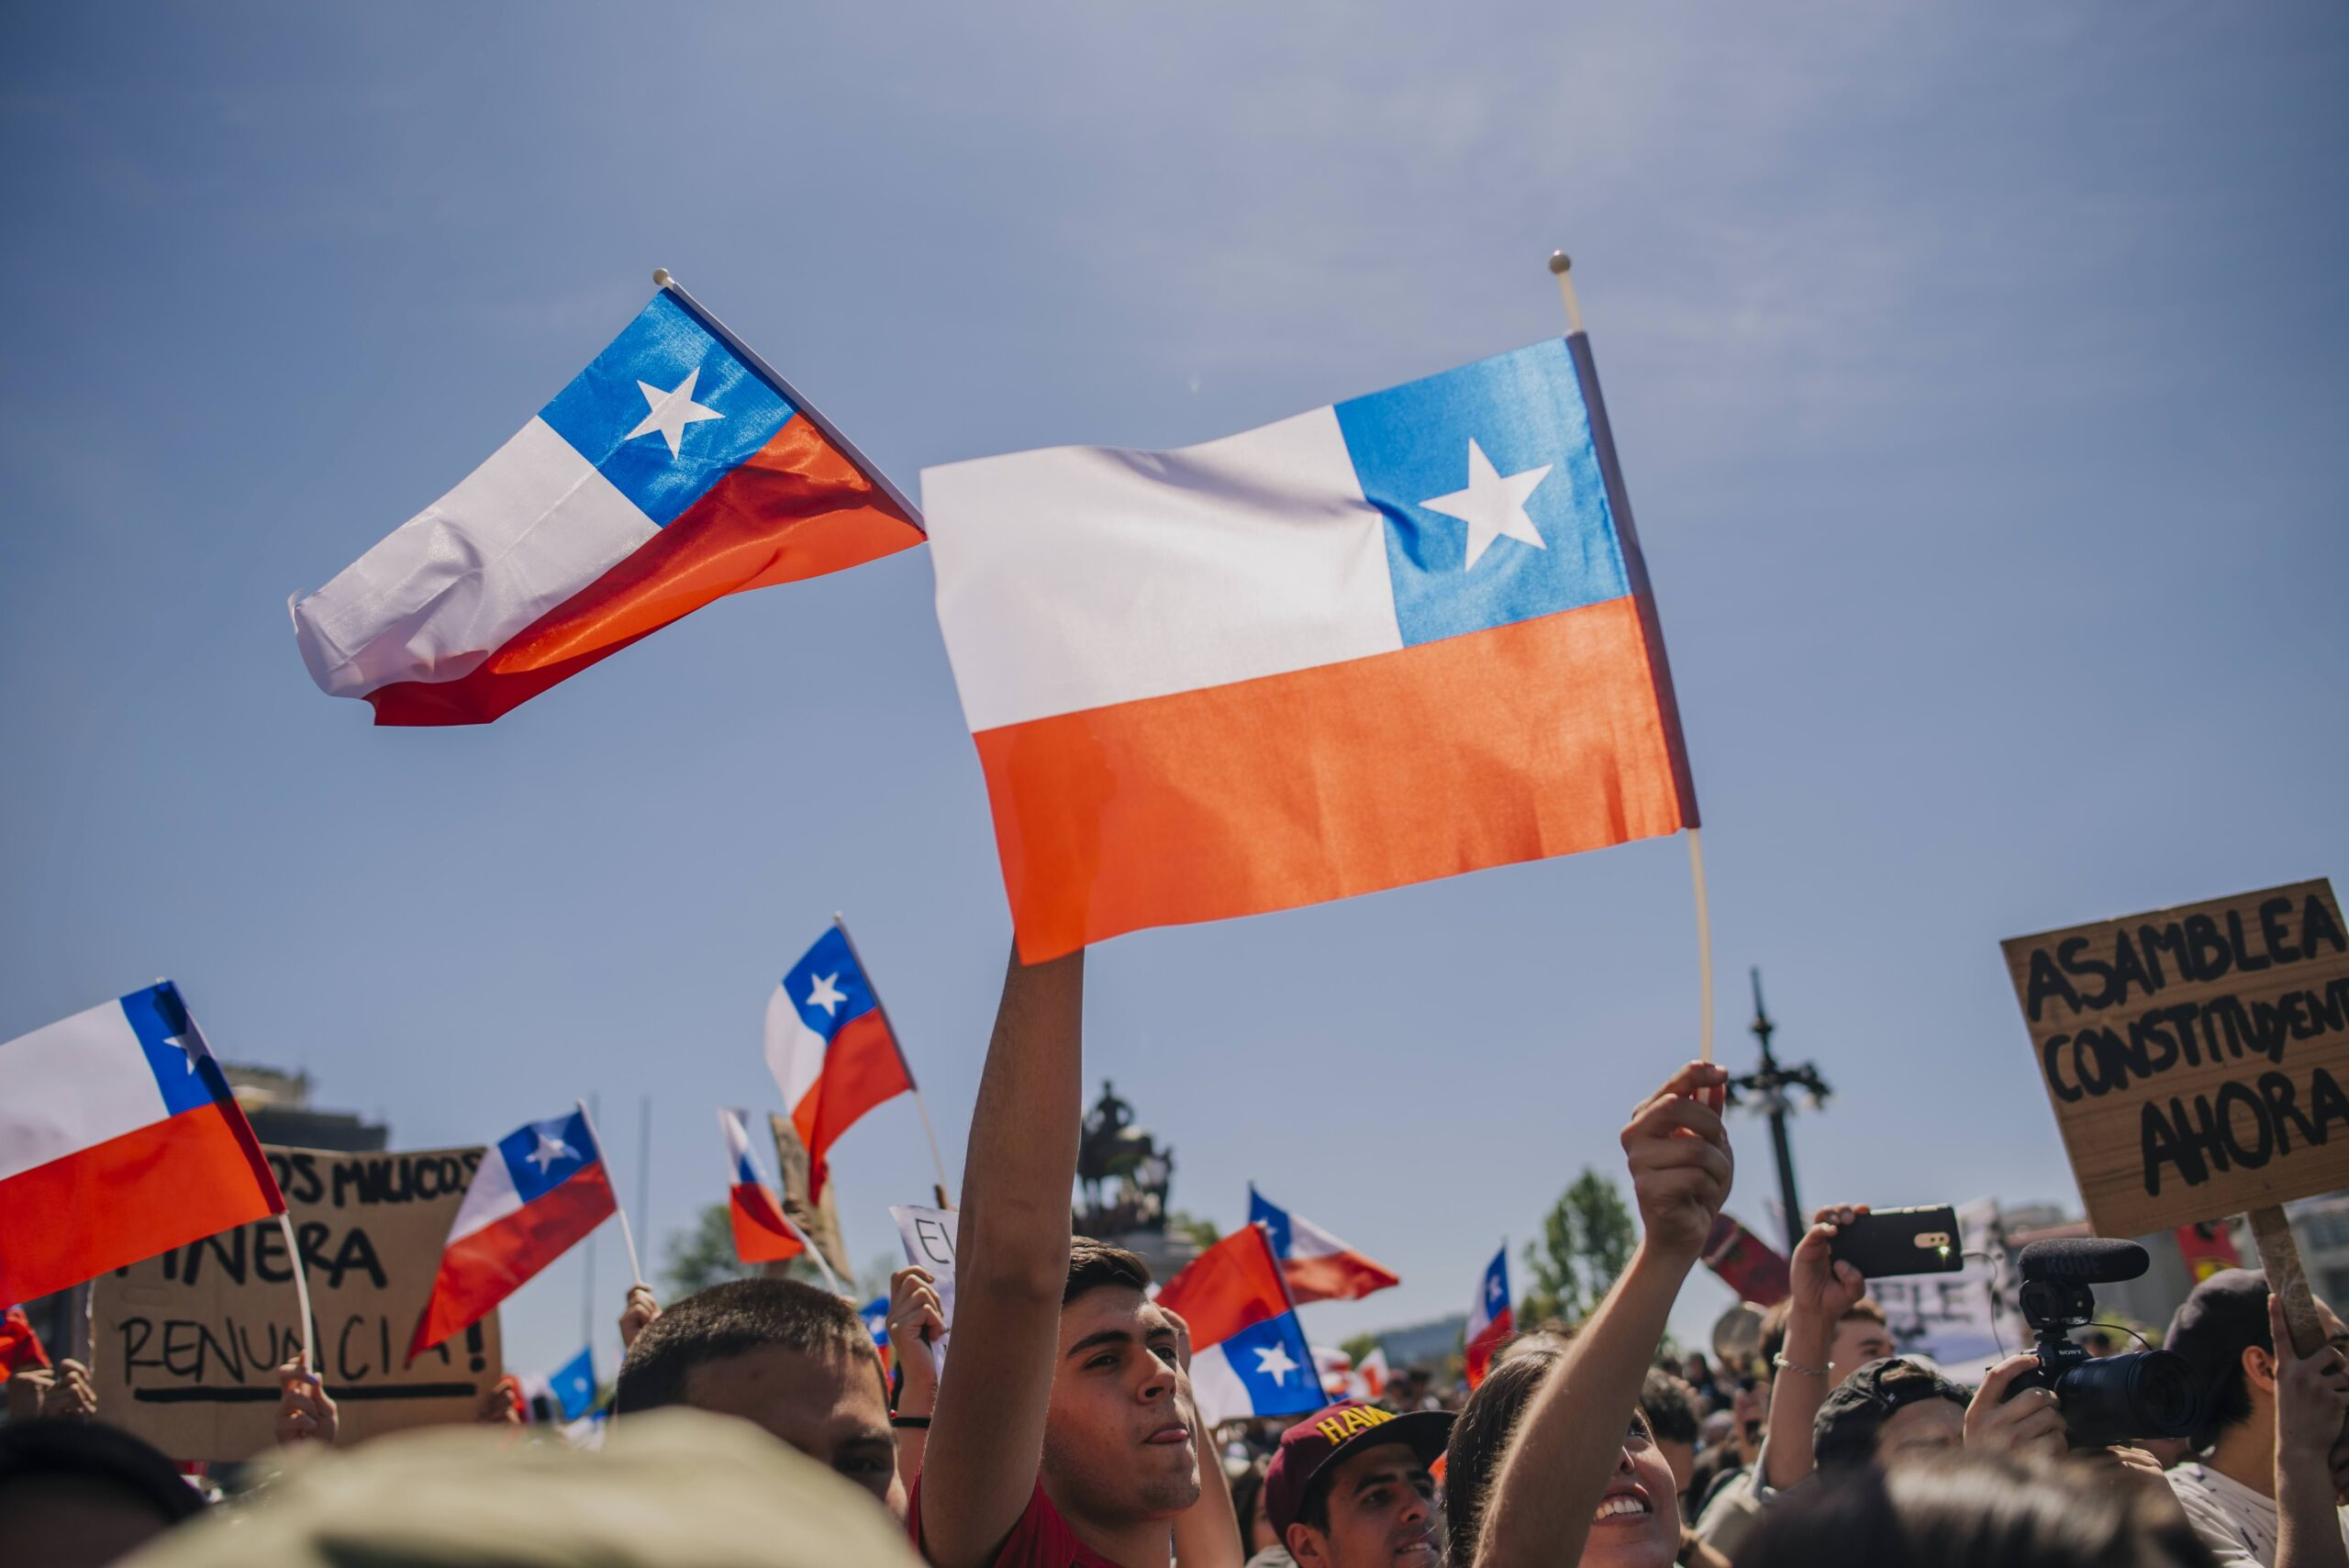 Chile opens the door for an 'ecological' constitution